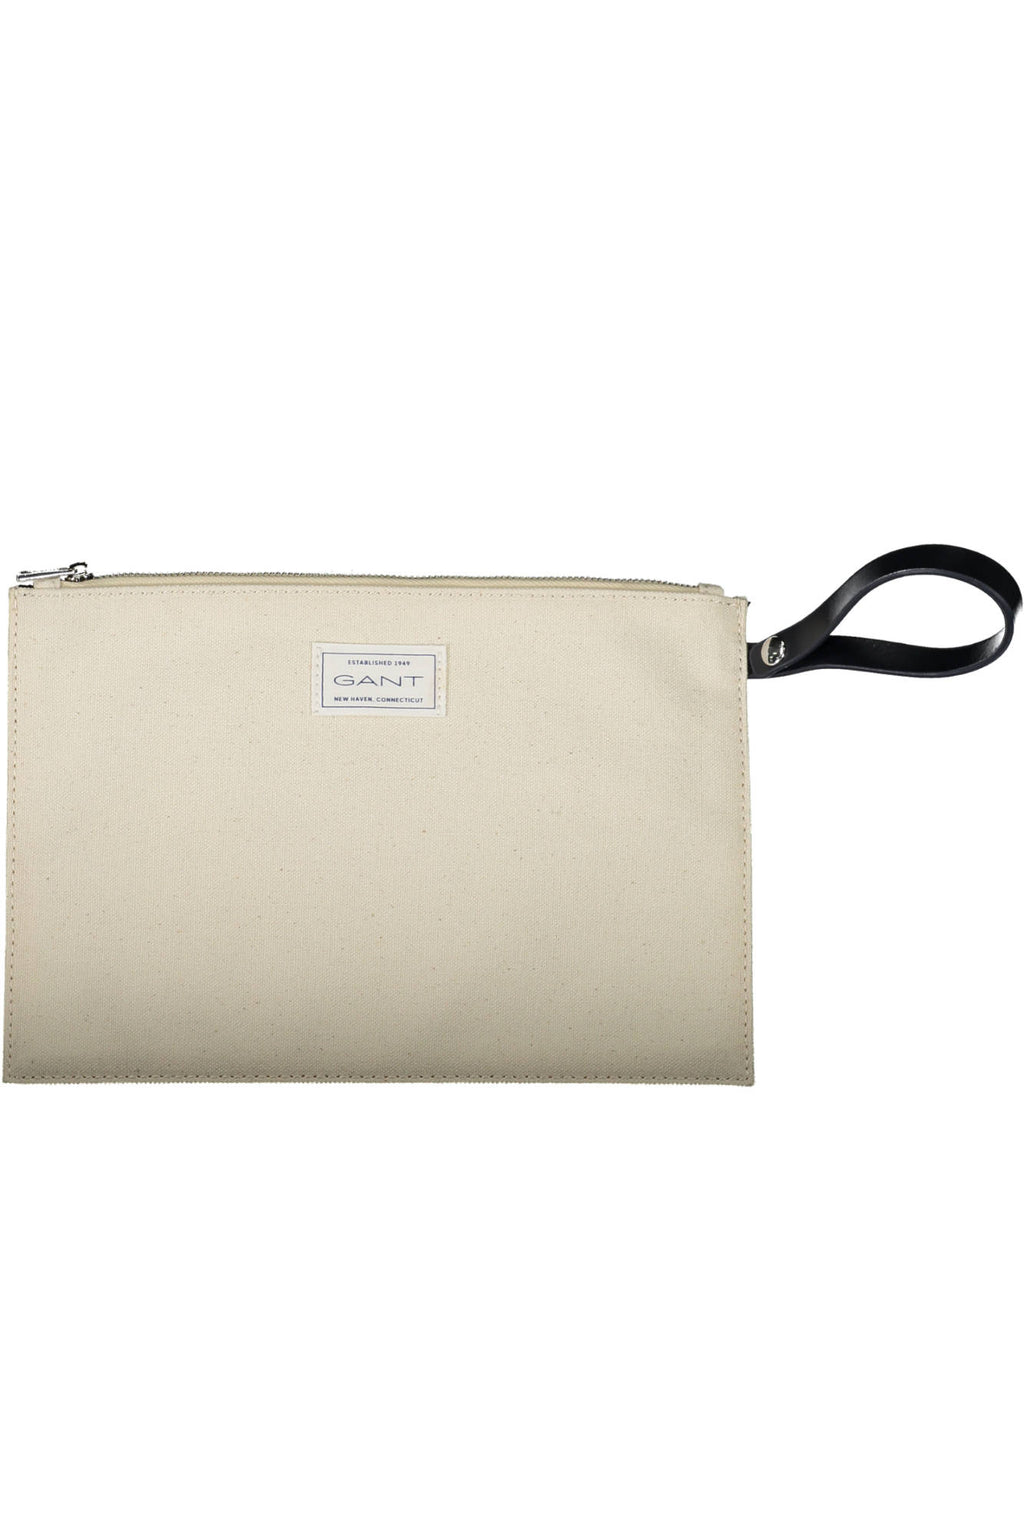 GANT Clutch  Damen - Beige -  SF-1901.4970028_34